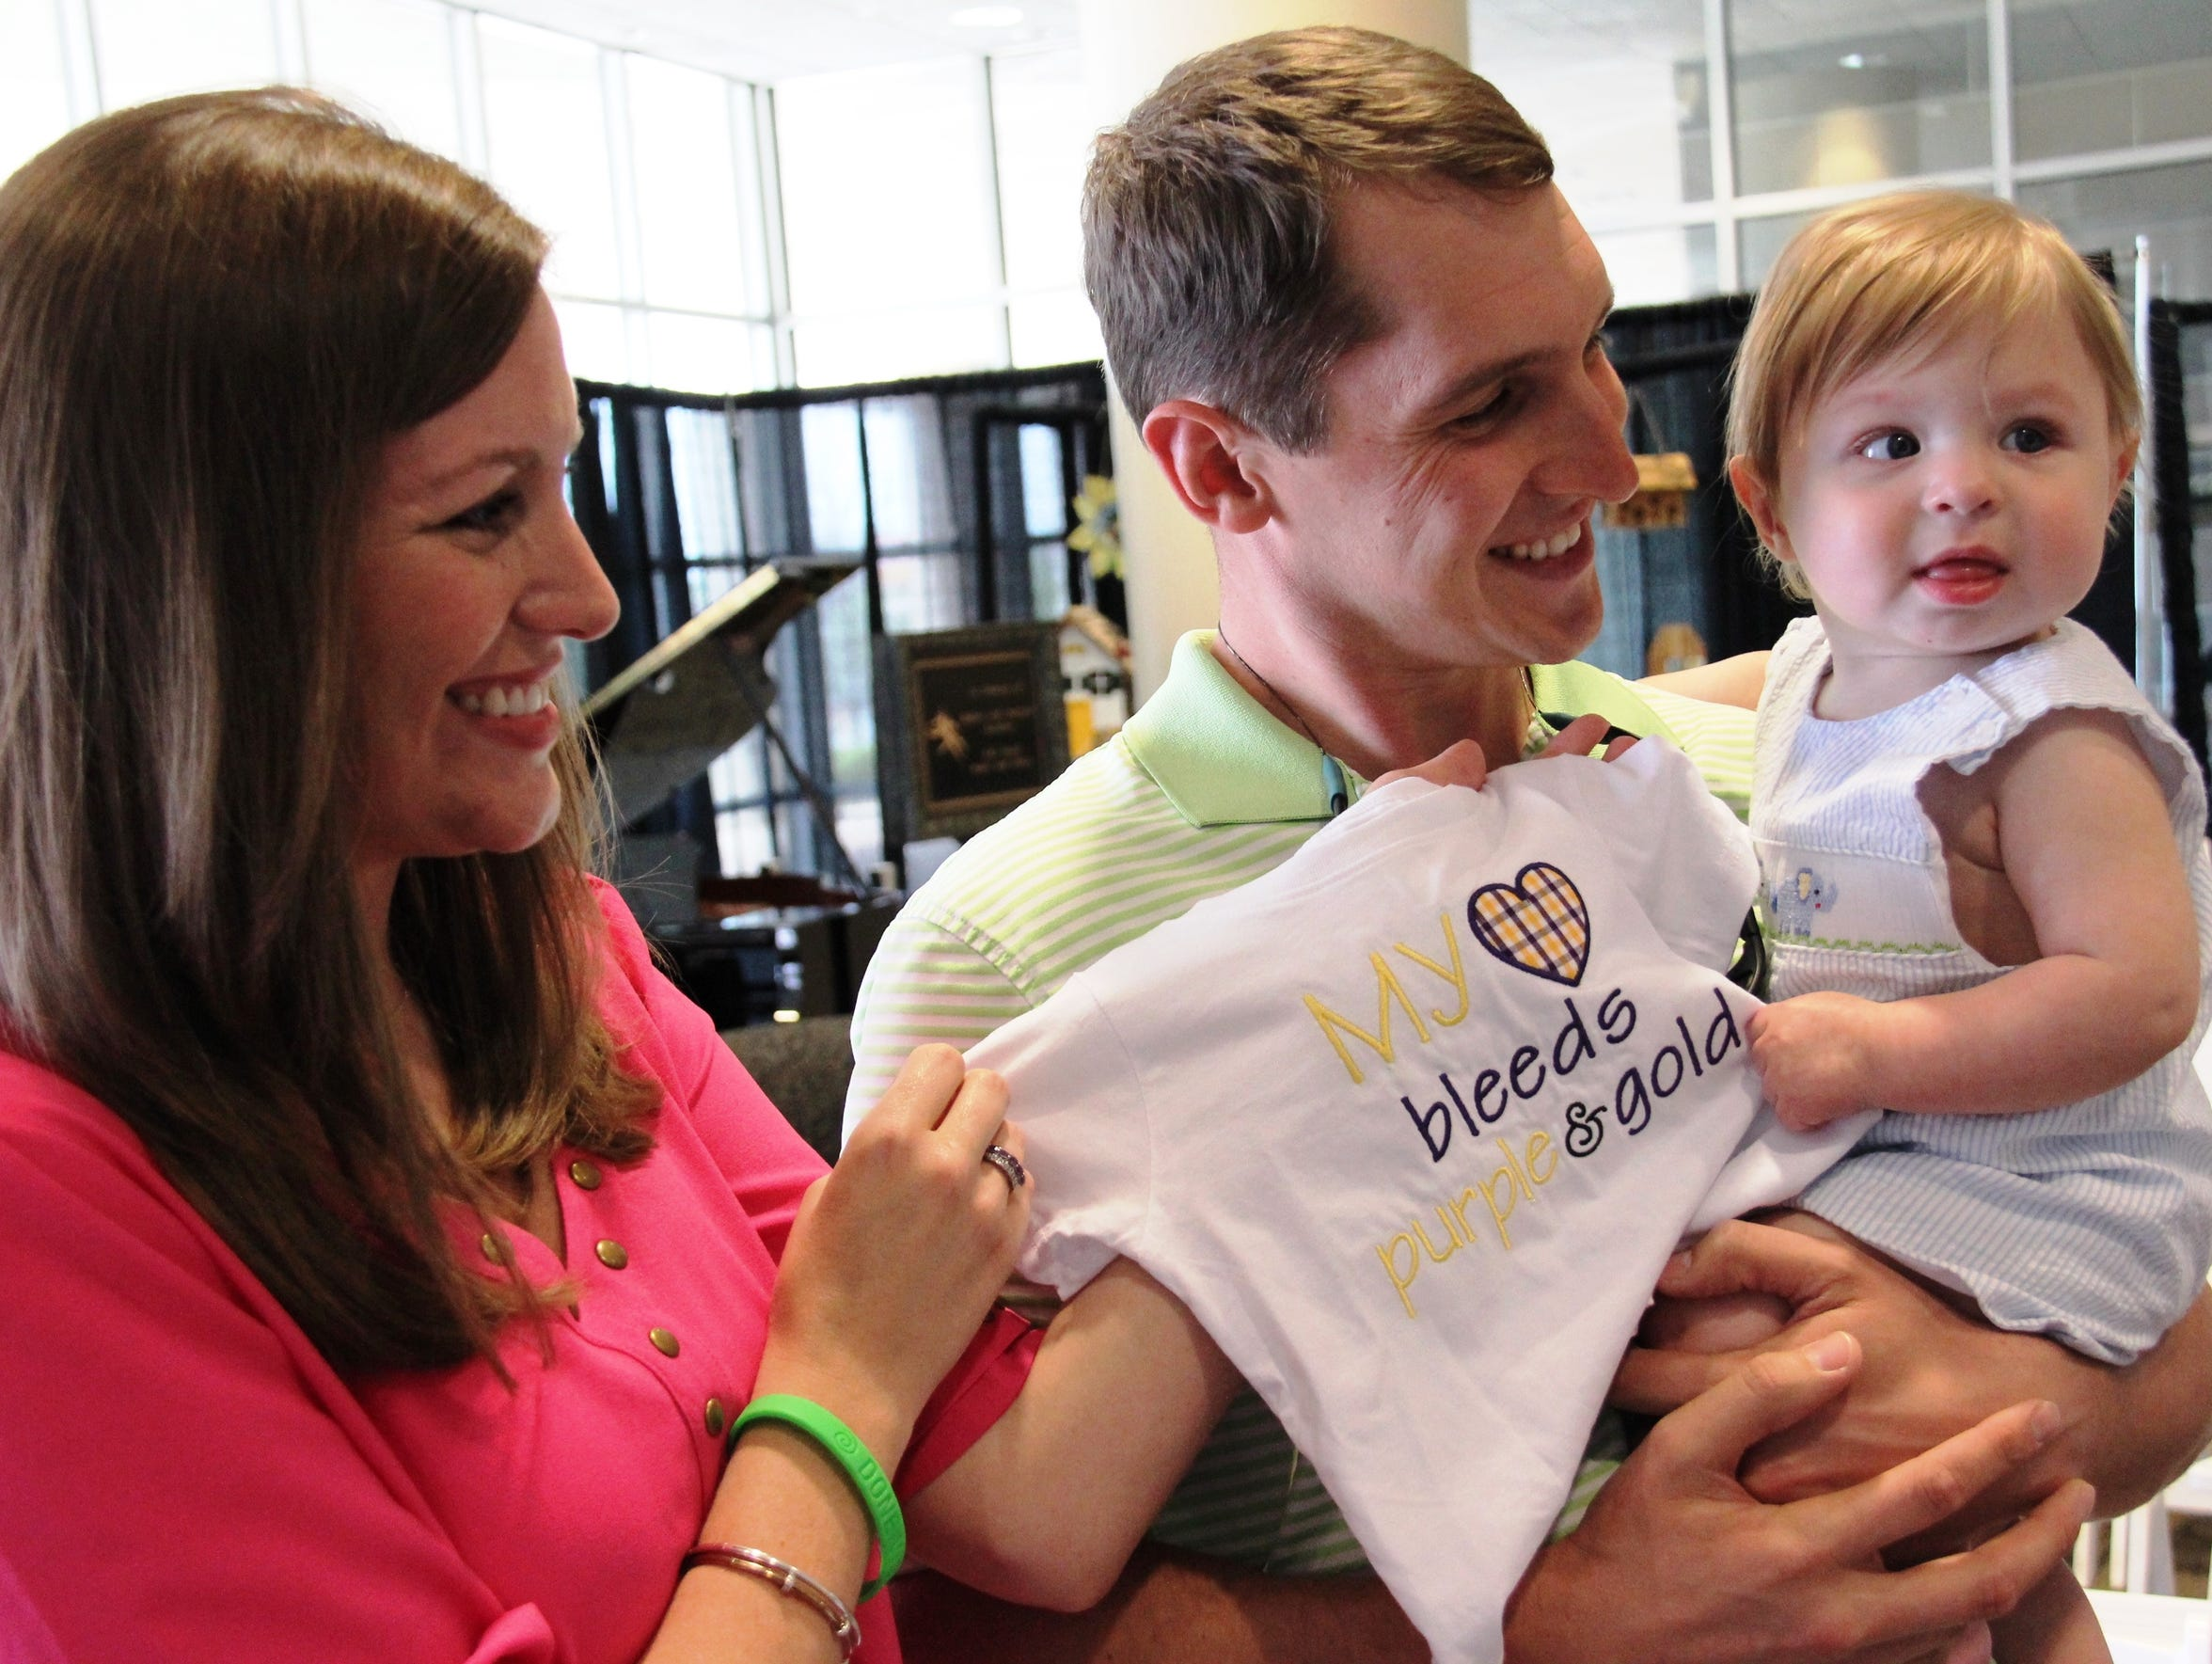 The Perry family presented Davis Boswell with a shirt